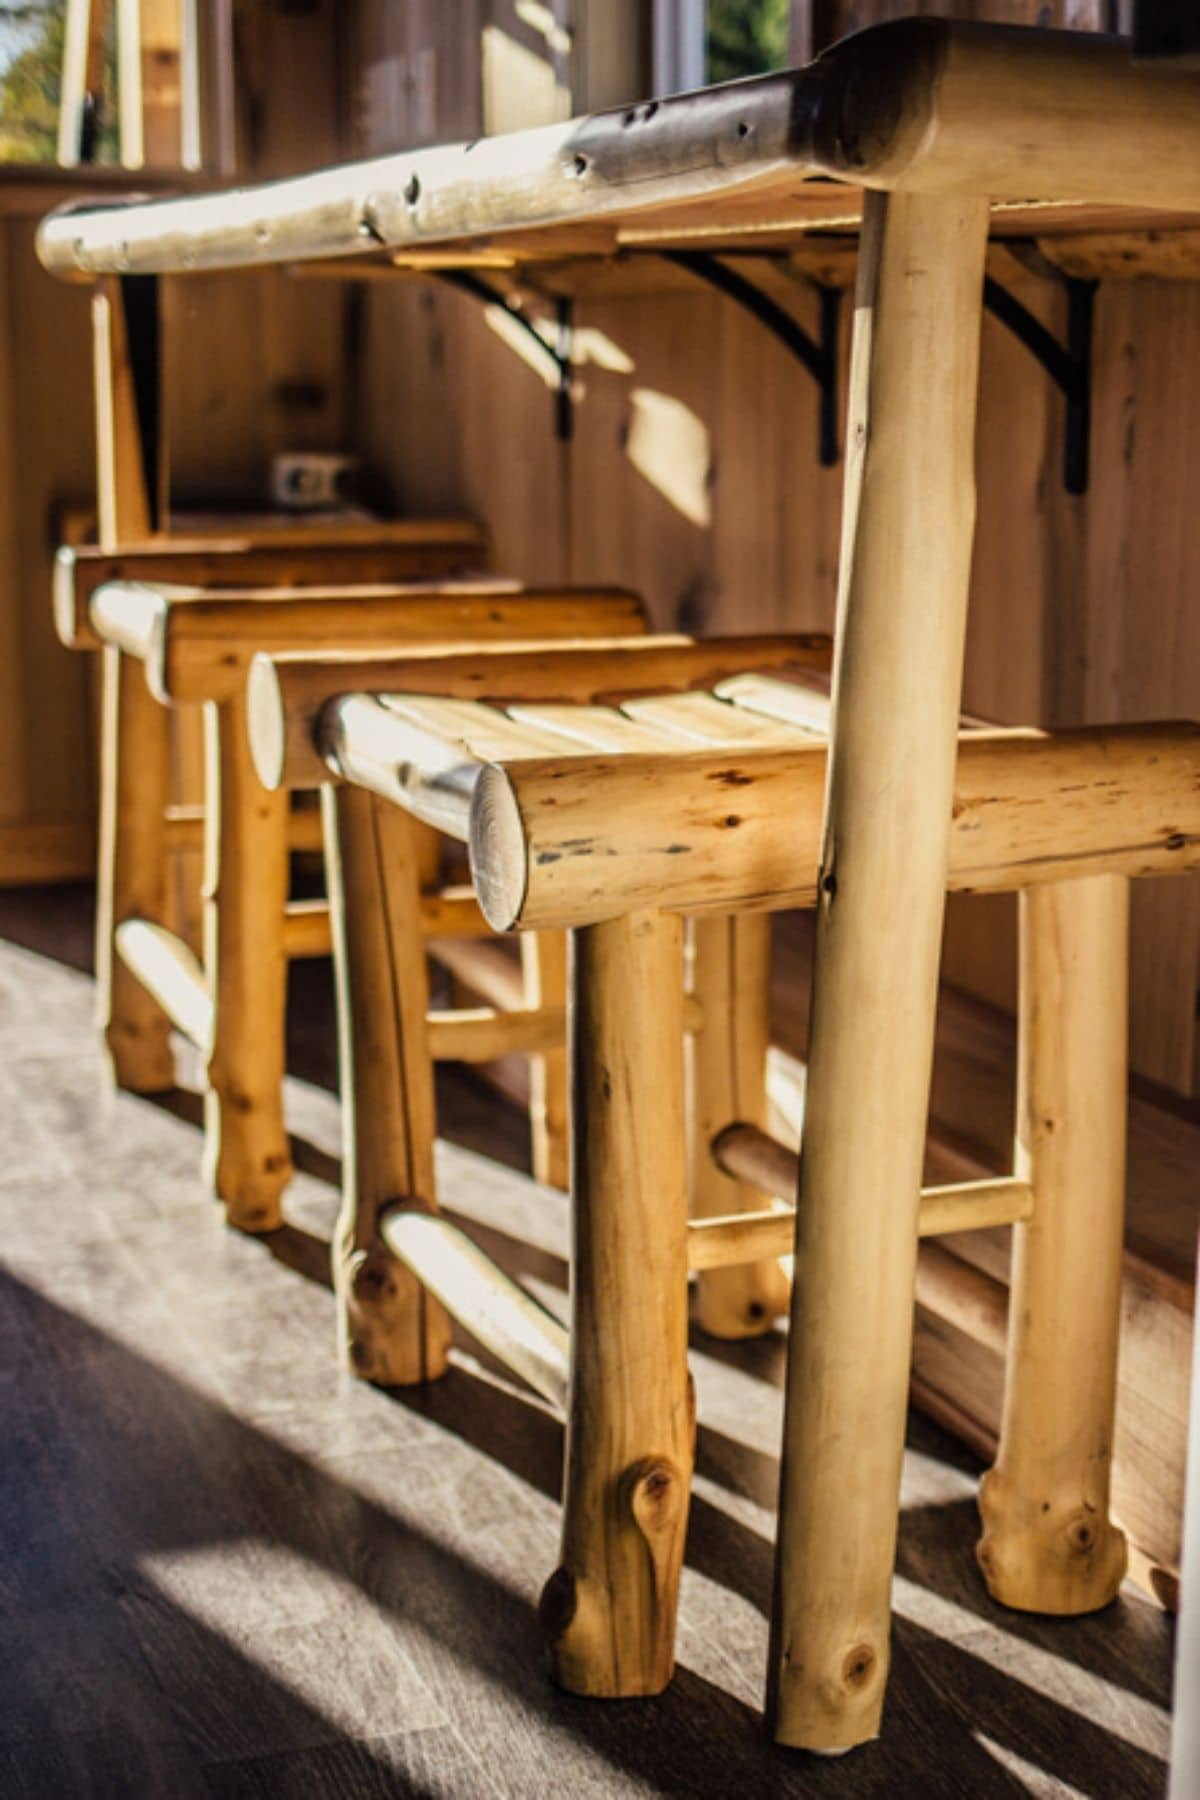 Rustic wooden bar stools in a row under counter